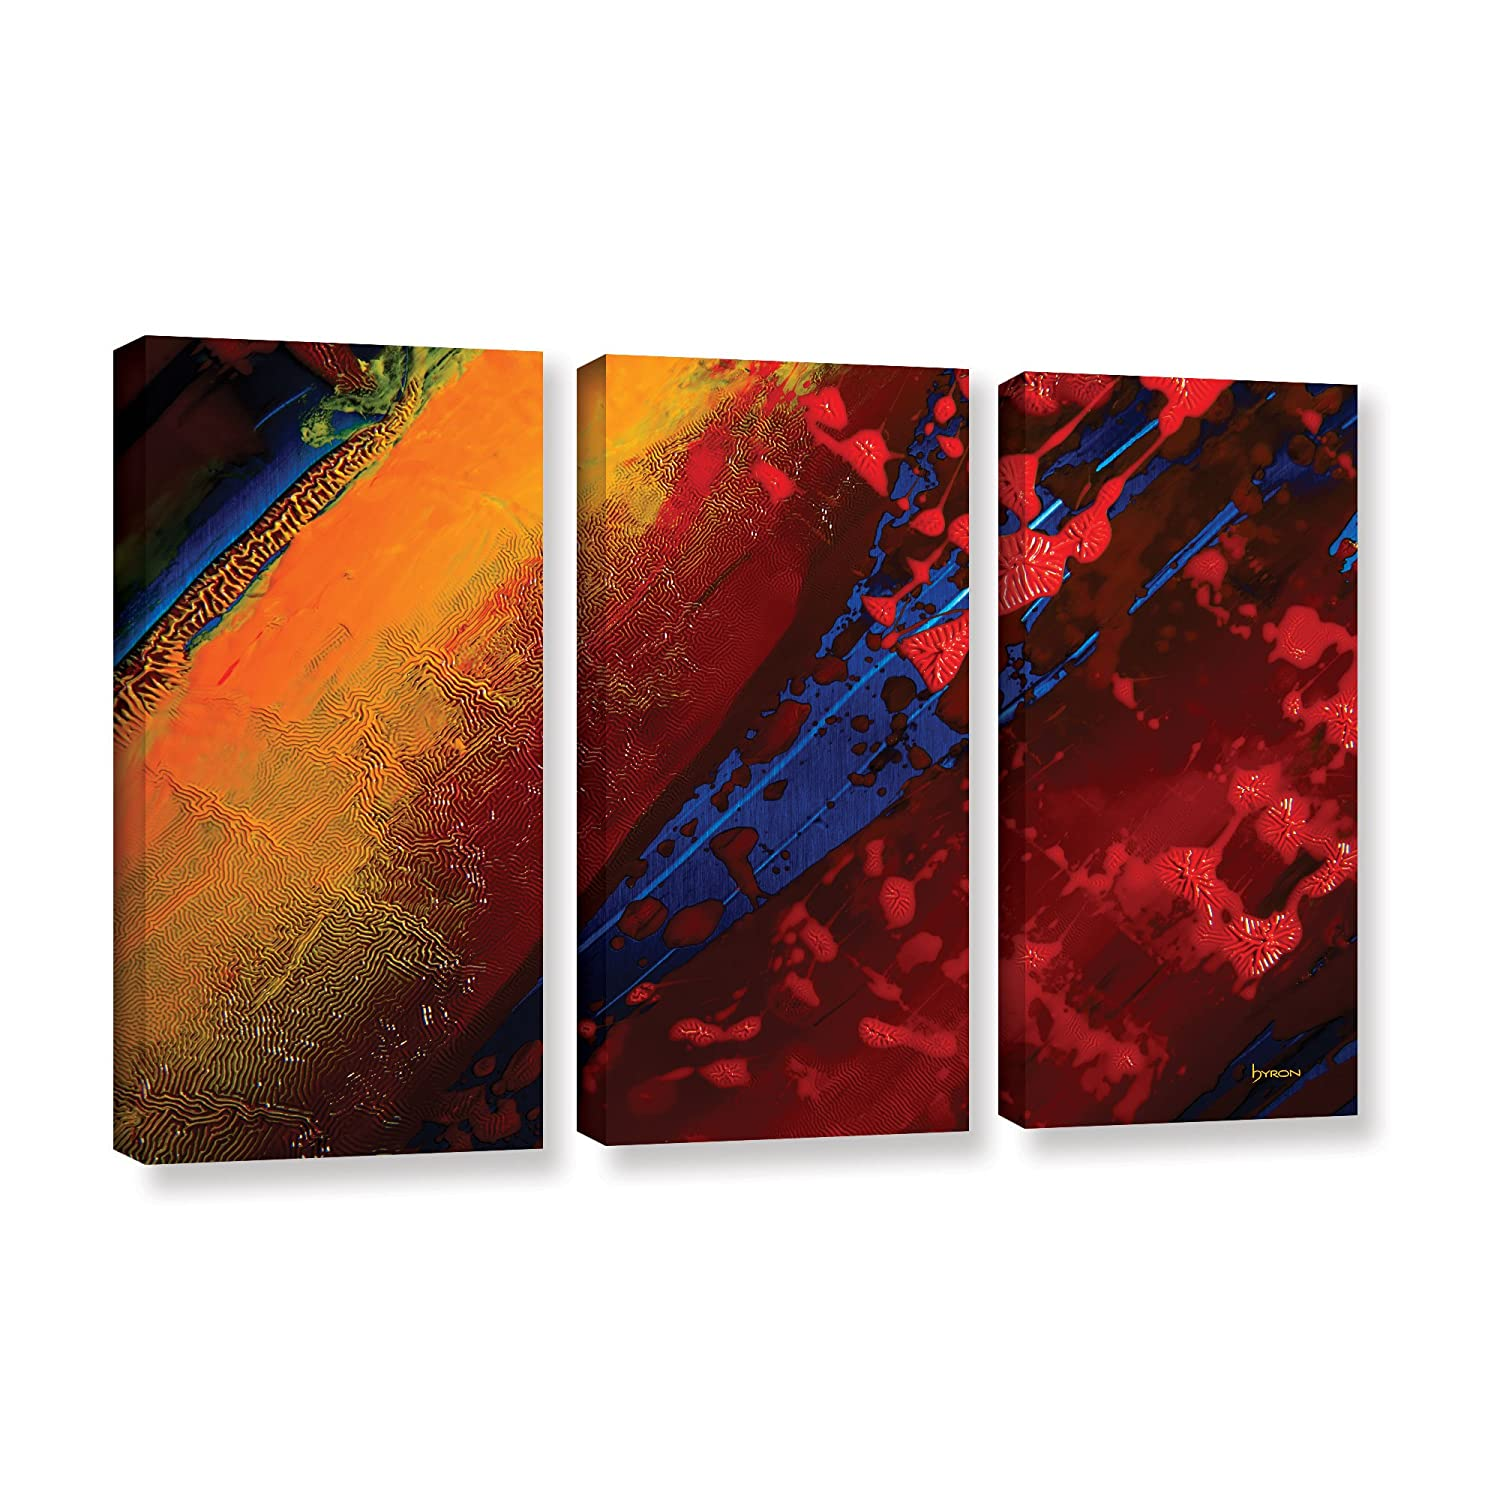 ArtWall 3 Piece Byron May's Out from The Depth Gallery Wrapped Canvas Set, 36 x 54'